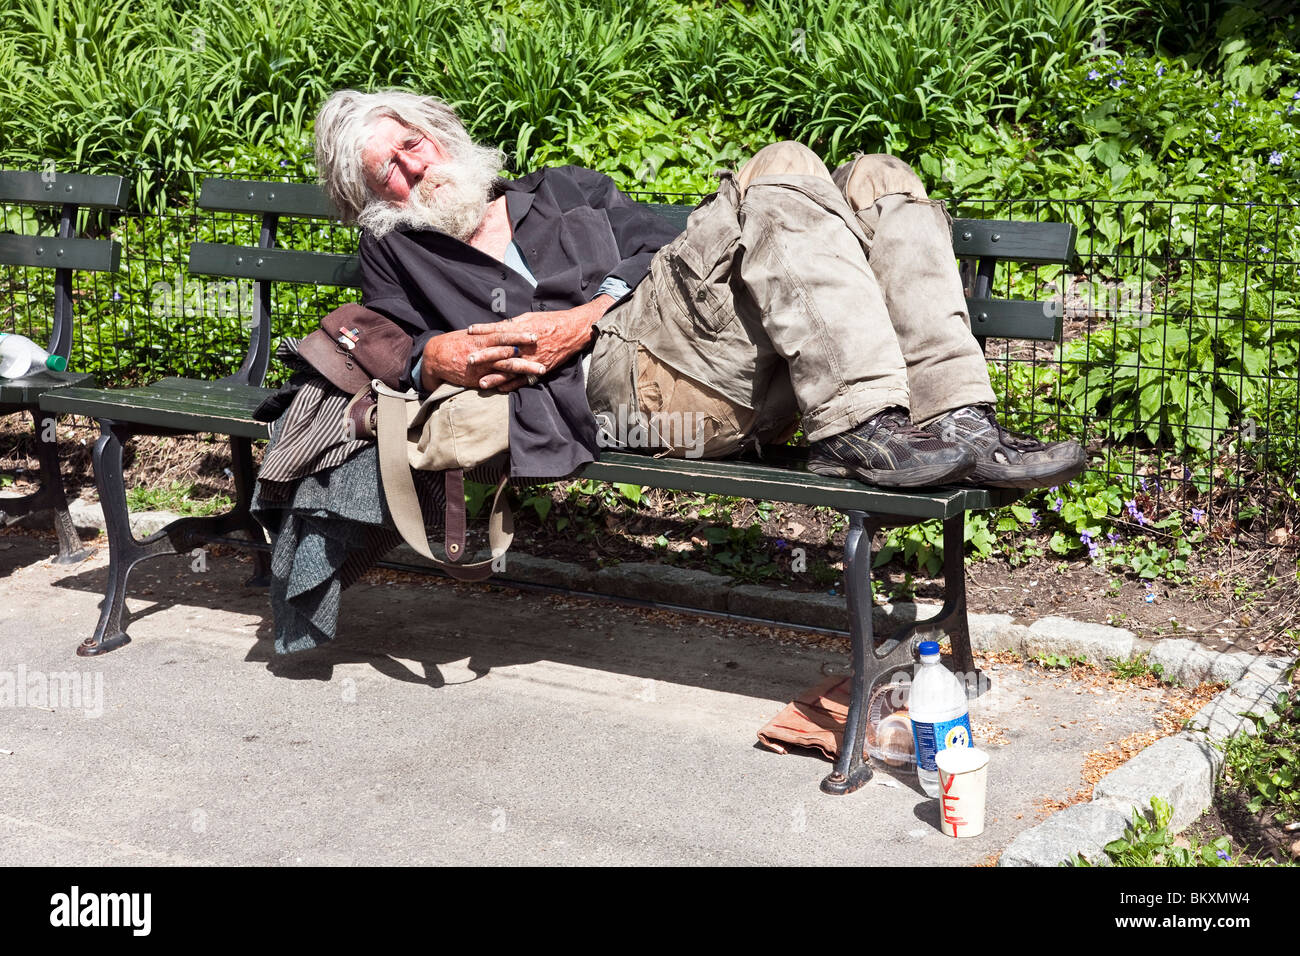 homeess in america Homeless in america, salt lake city, utah 1,313 likes 21 talking about this homelessness occurs when people or households are unable to acquire.